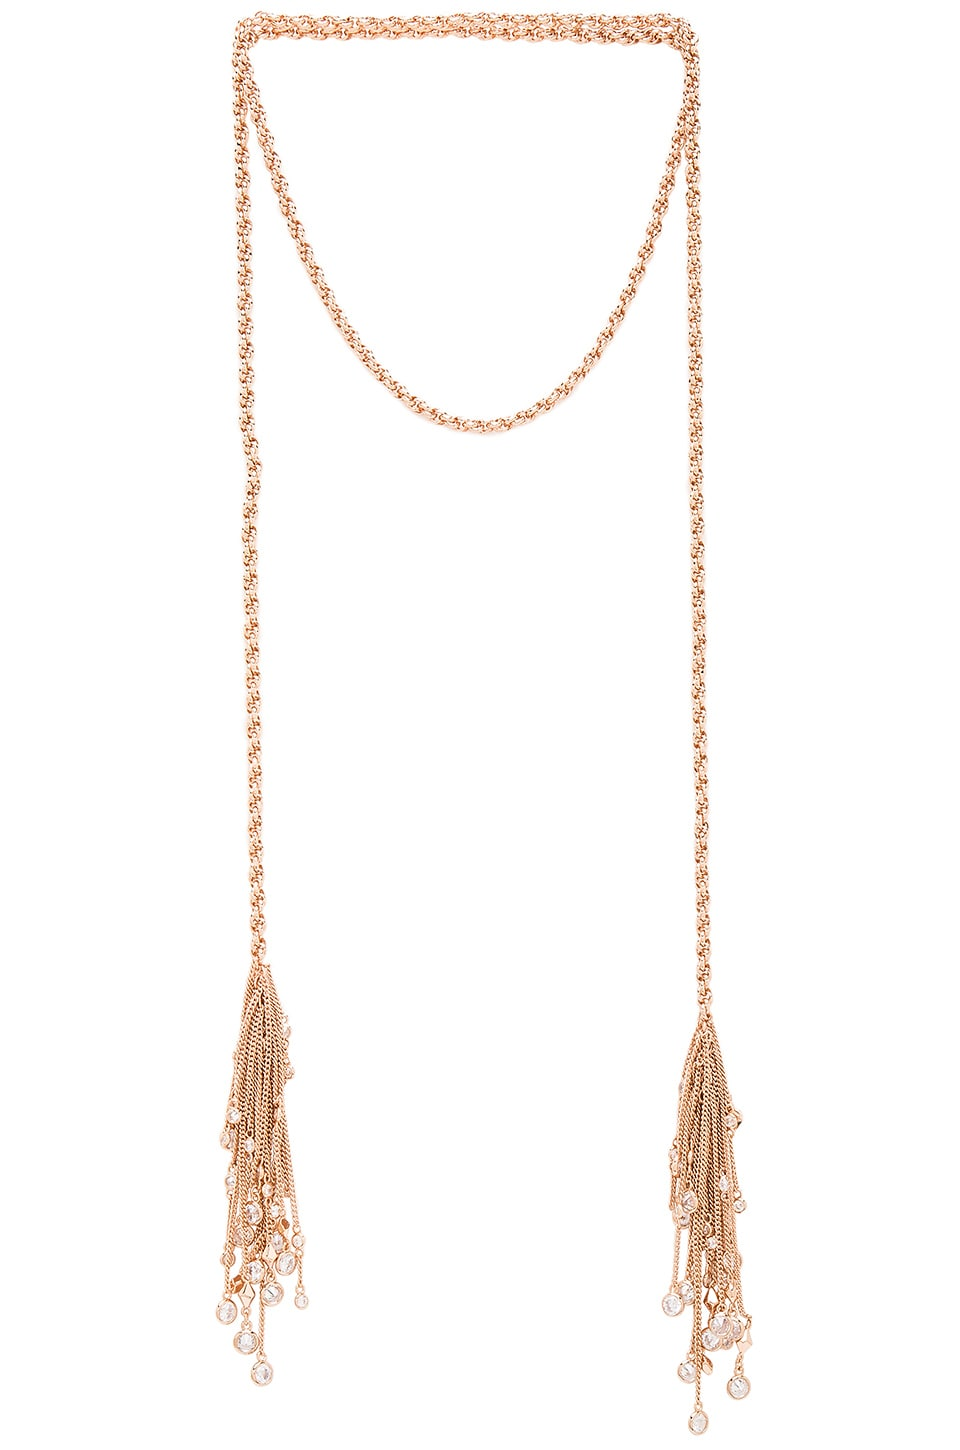 Sloan Necklace by Kendra Scott